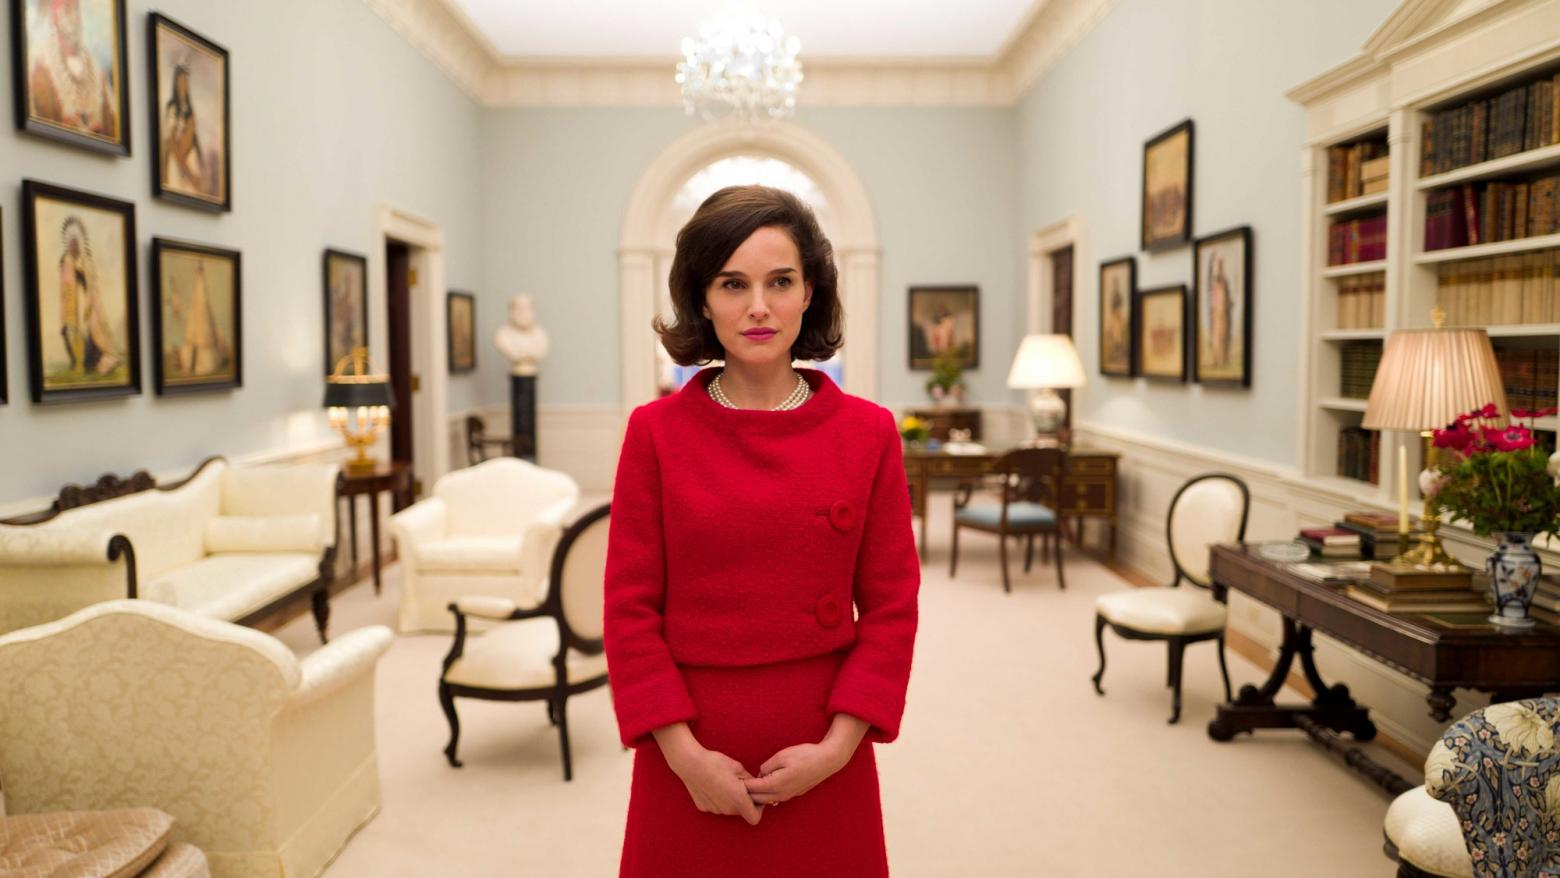 Jackie. 2016. USA. Directed by Pablo Larrain. 100 min.